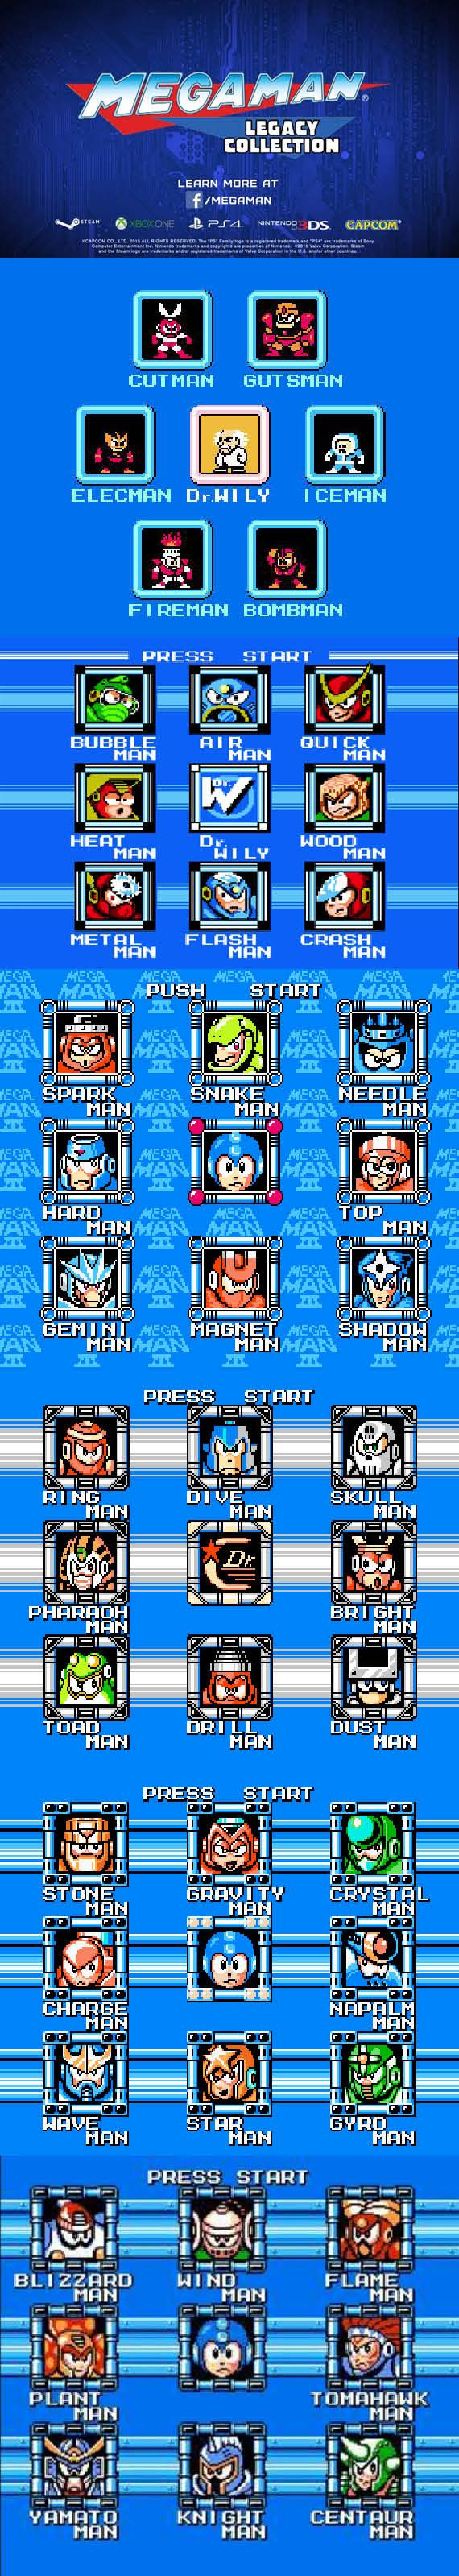 #MegaMan Legacy The first six Mega Man games are about to be released in HD #8bit Glory! #RetroGamer http://www.levelgamingground.com/mega-man-legacy-collection.html